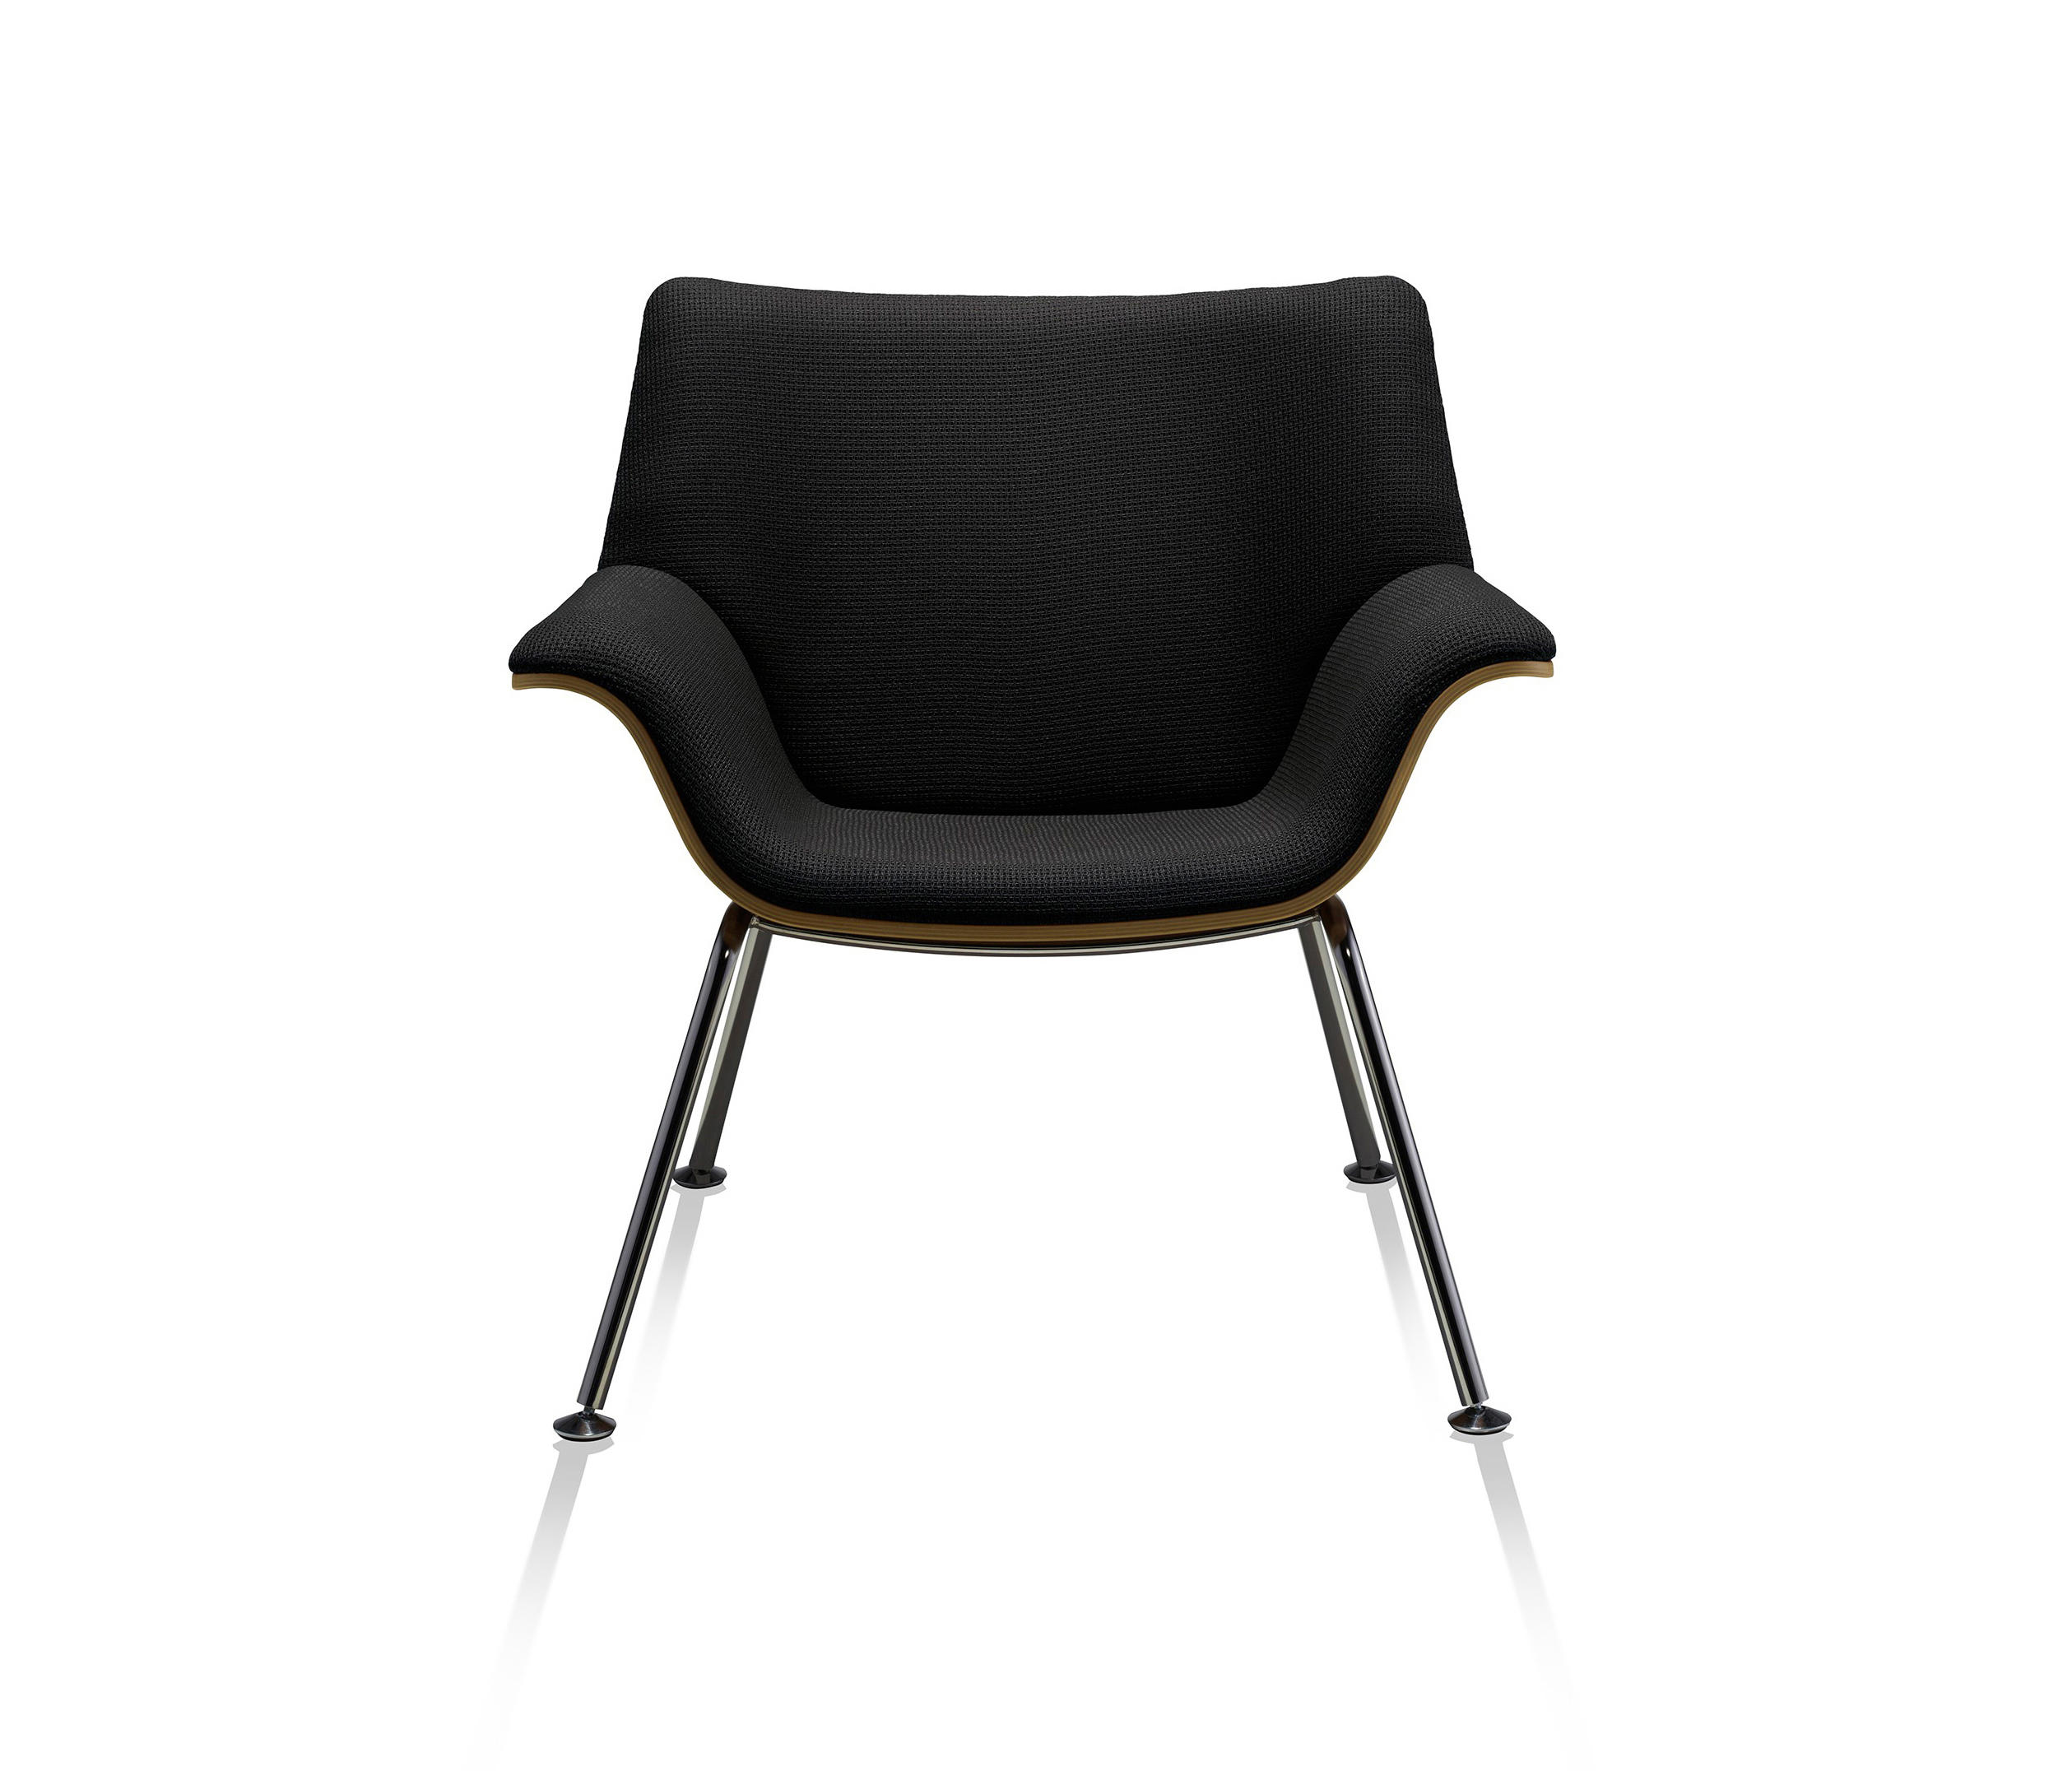 Great Swoop Lounge Chair By Herman Miller | Lounge Chairs ...